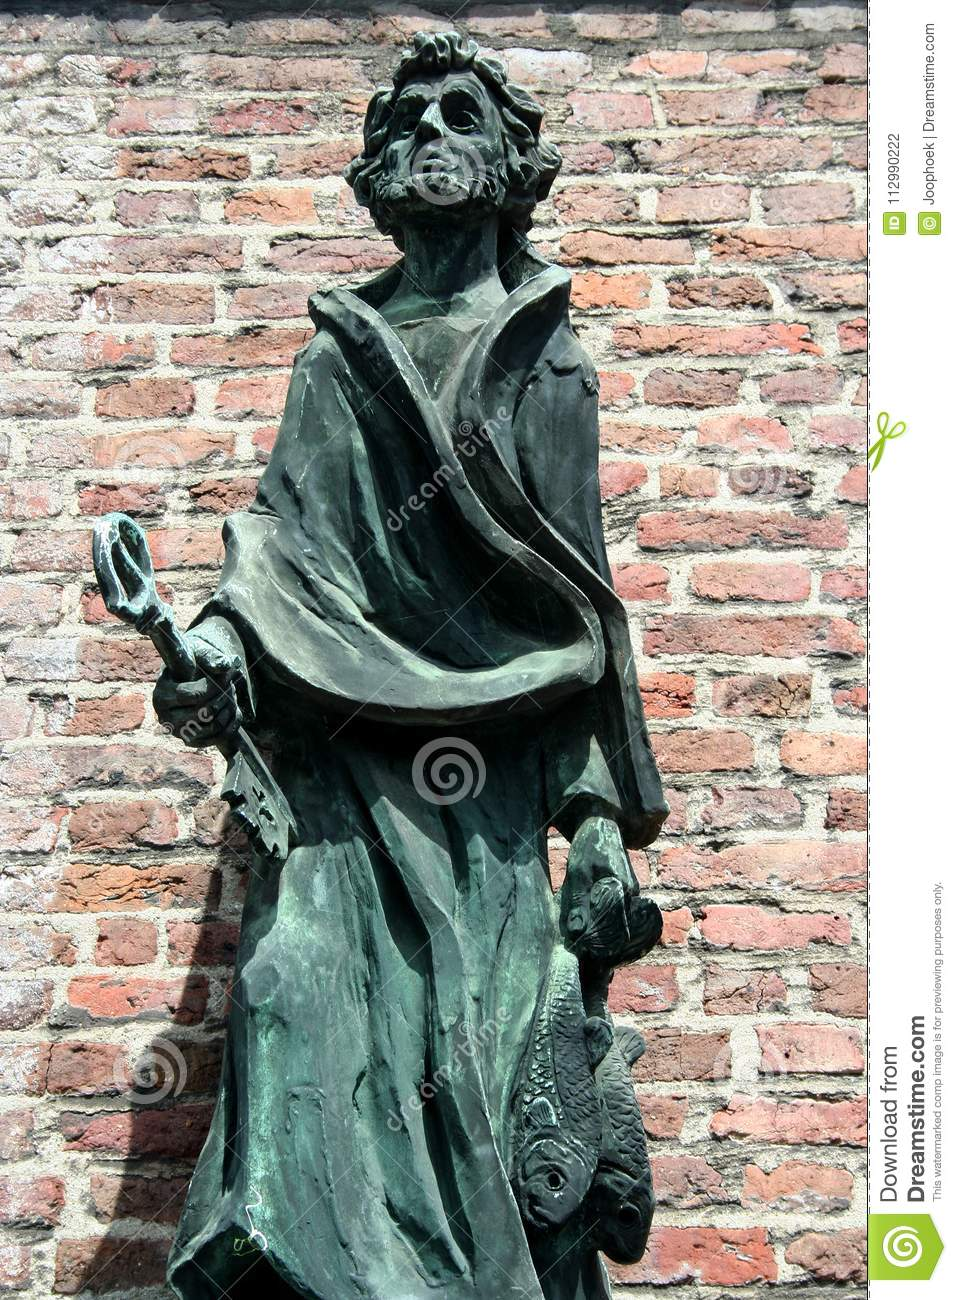 Statue of st Peter in front of the St Petrus in Sittard